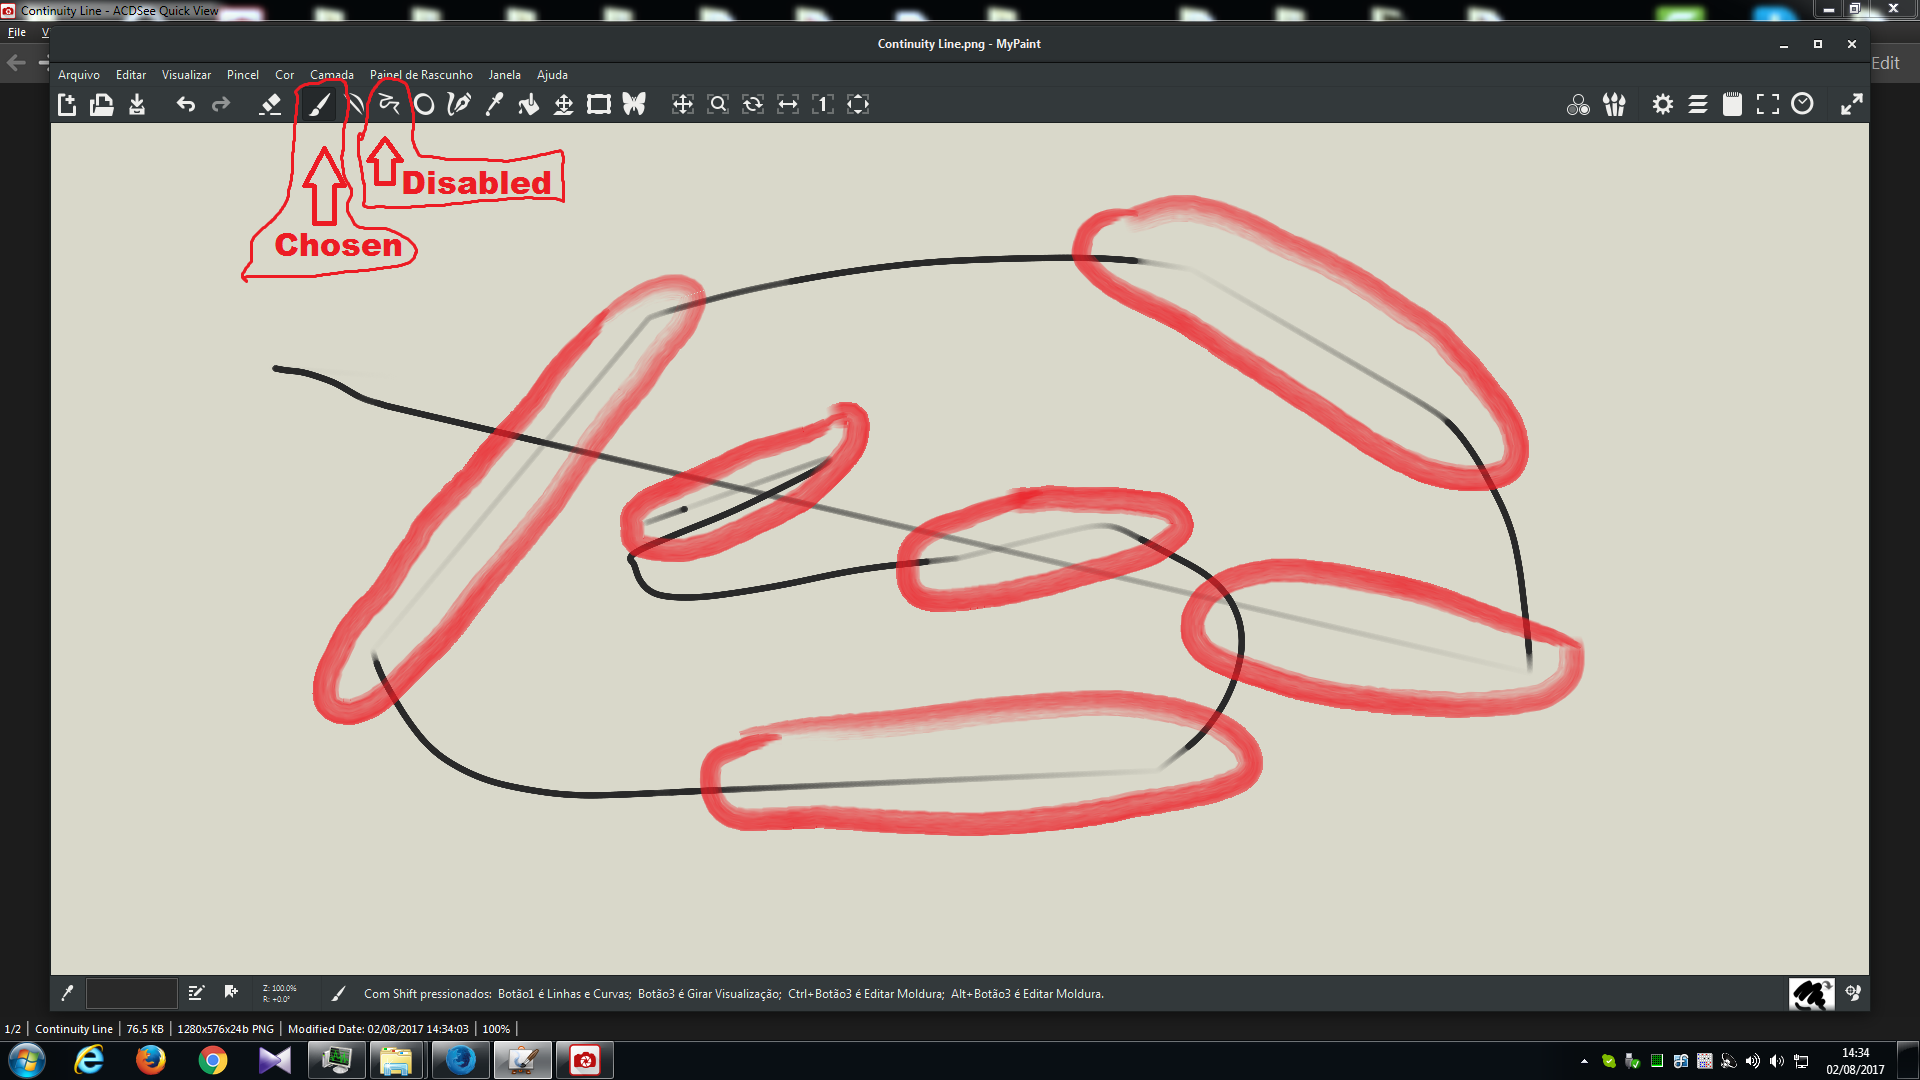 Basic trace problem / Connected Lines after brush strokes